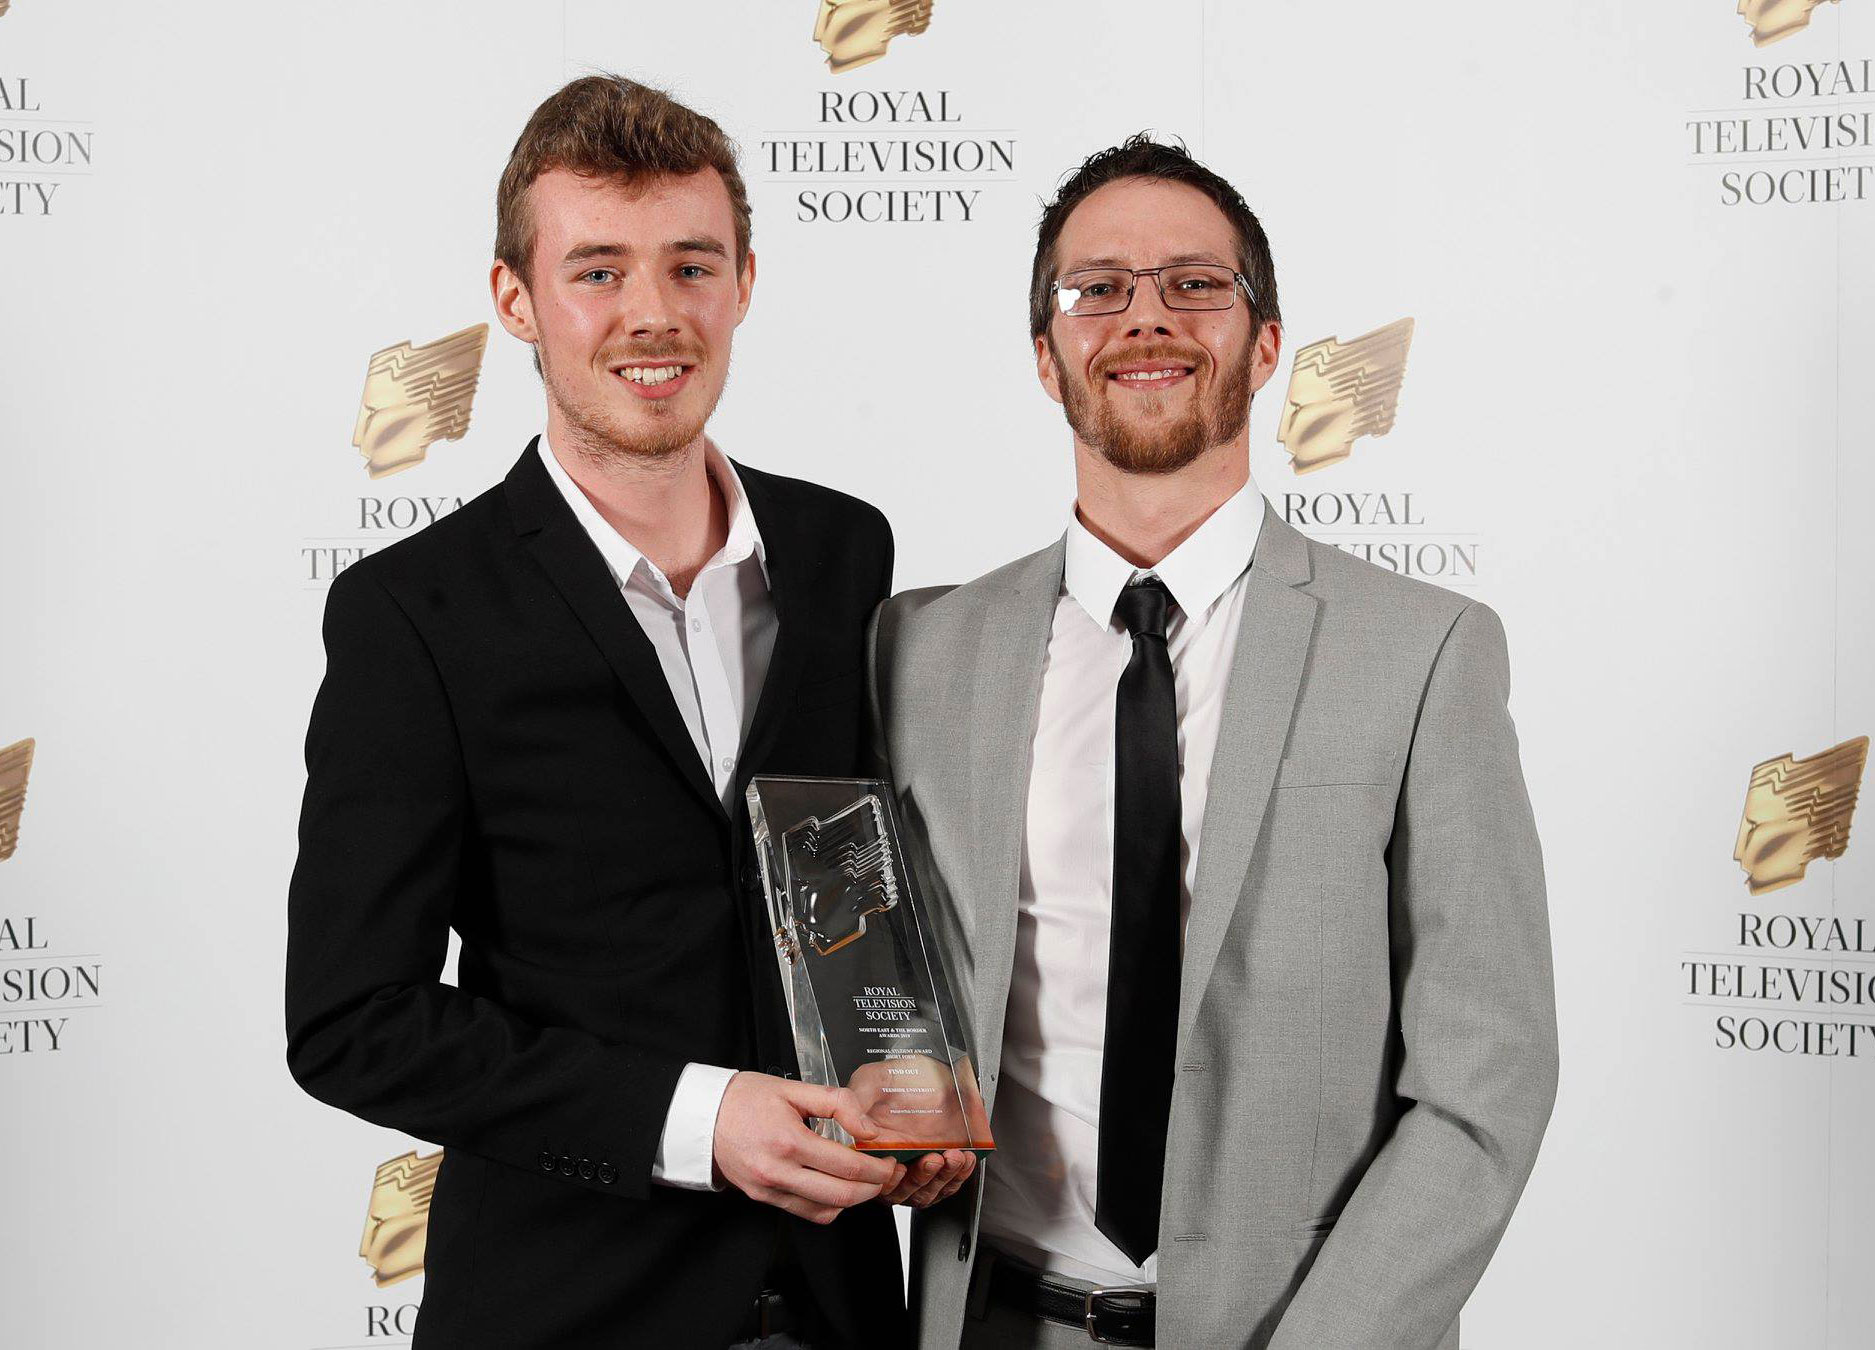 TJ Simon and Nicky Mawdesley who won the Short Form award for Find Out